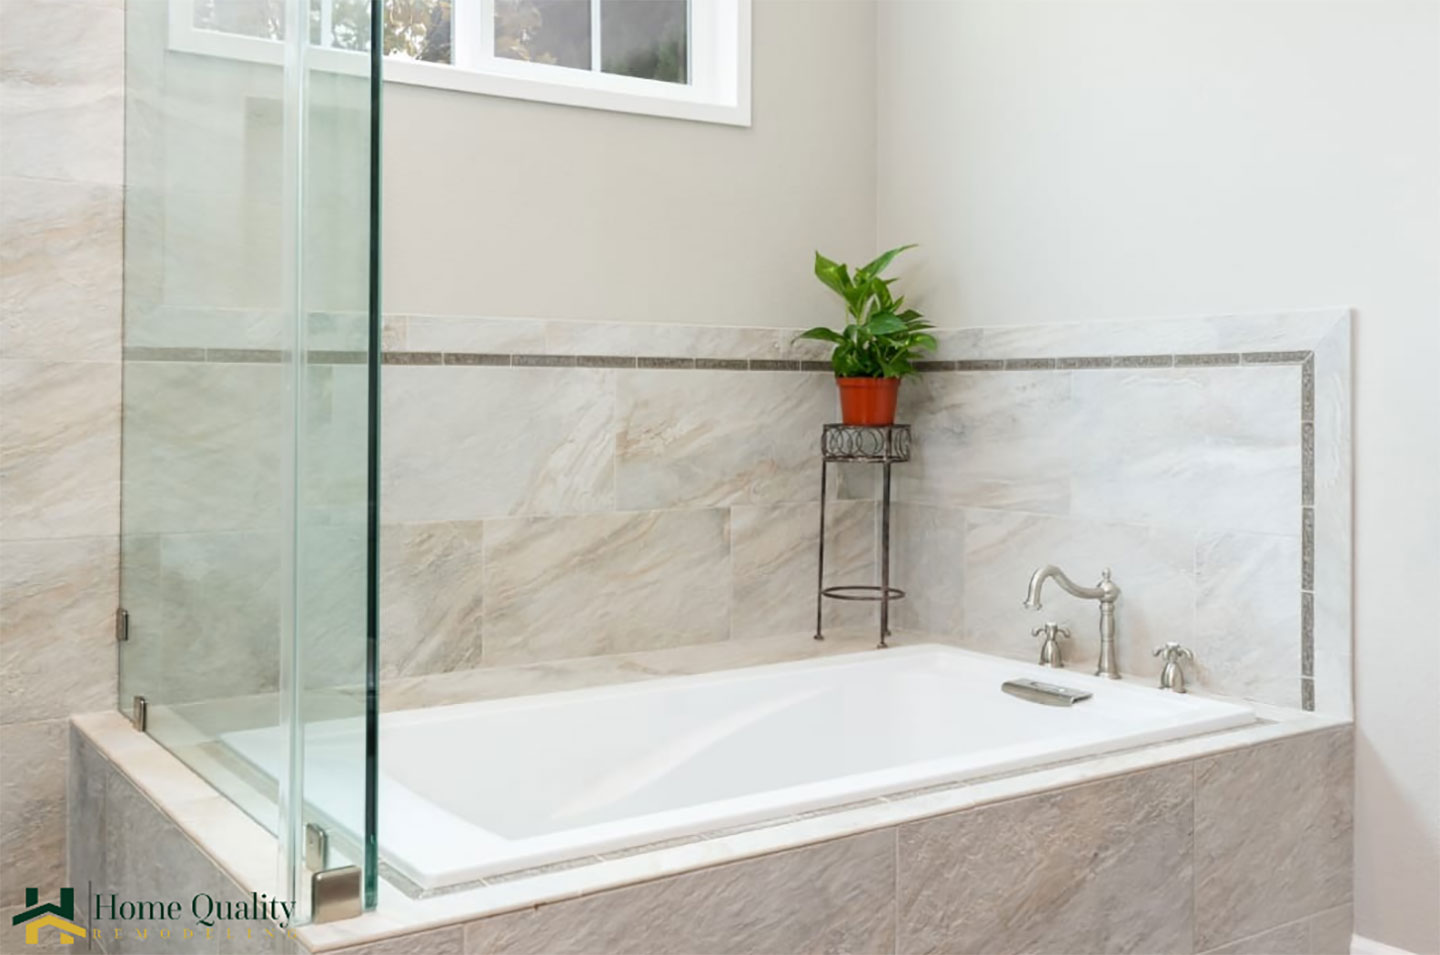 drop-in bathtub with glass screen